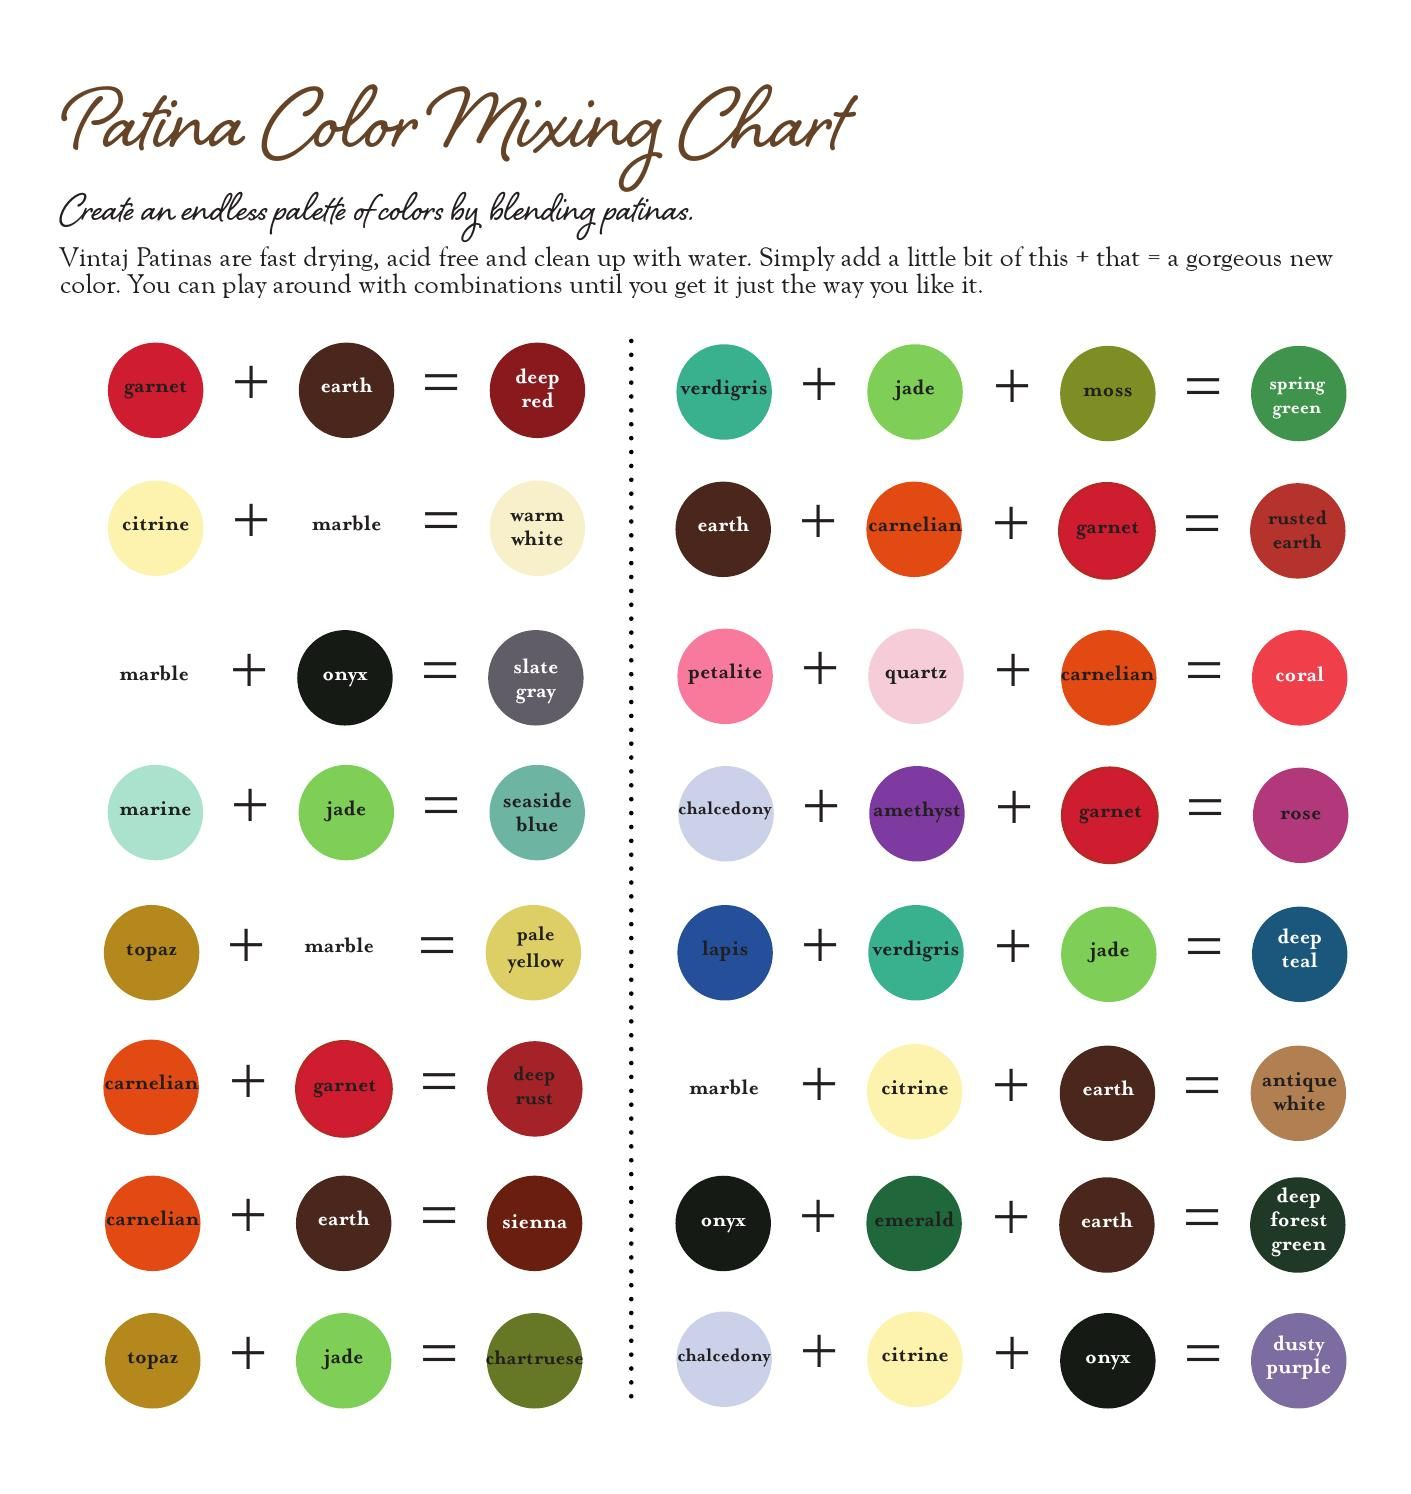 patina color mixing chart in 2019